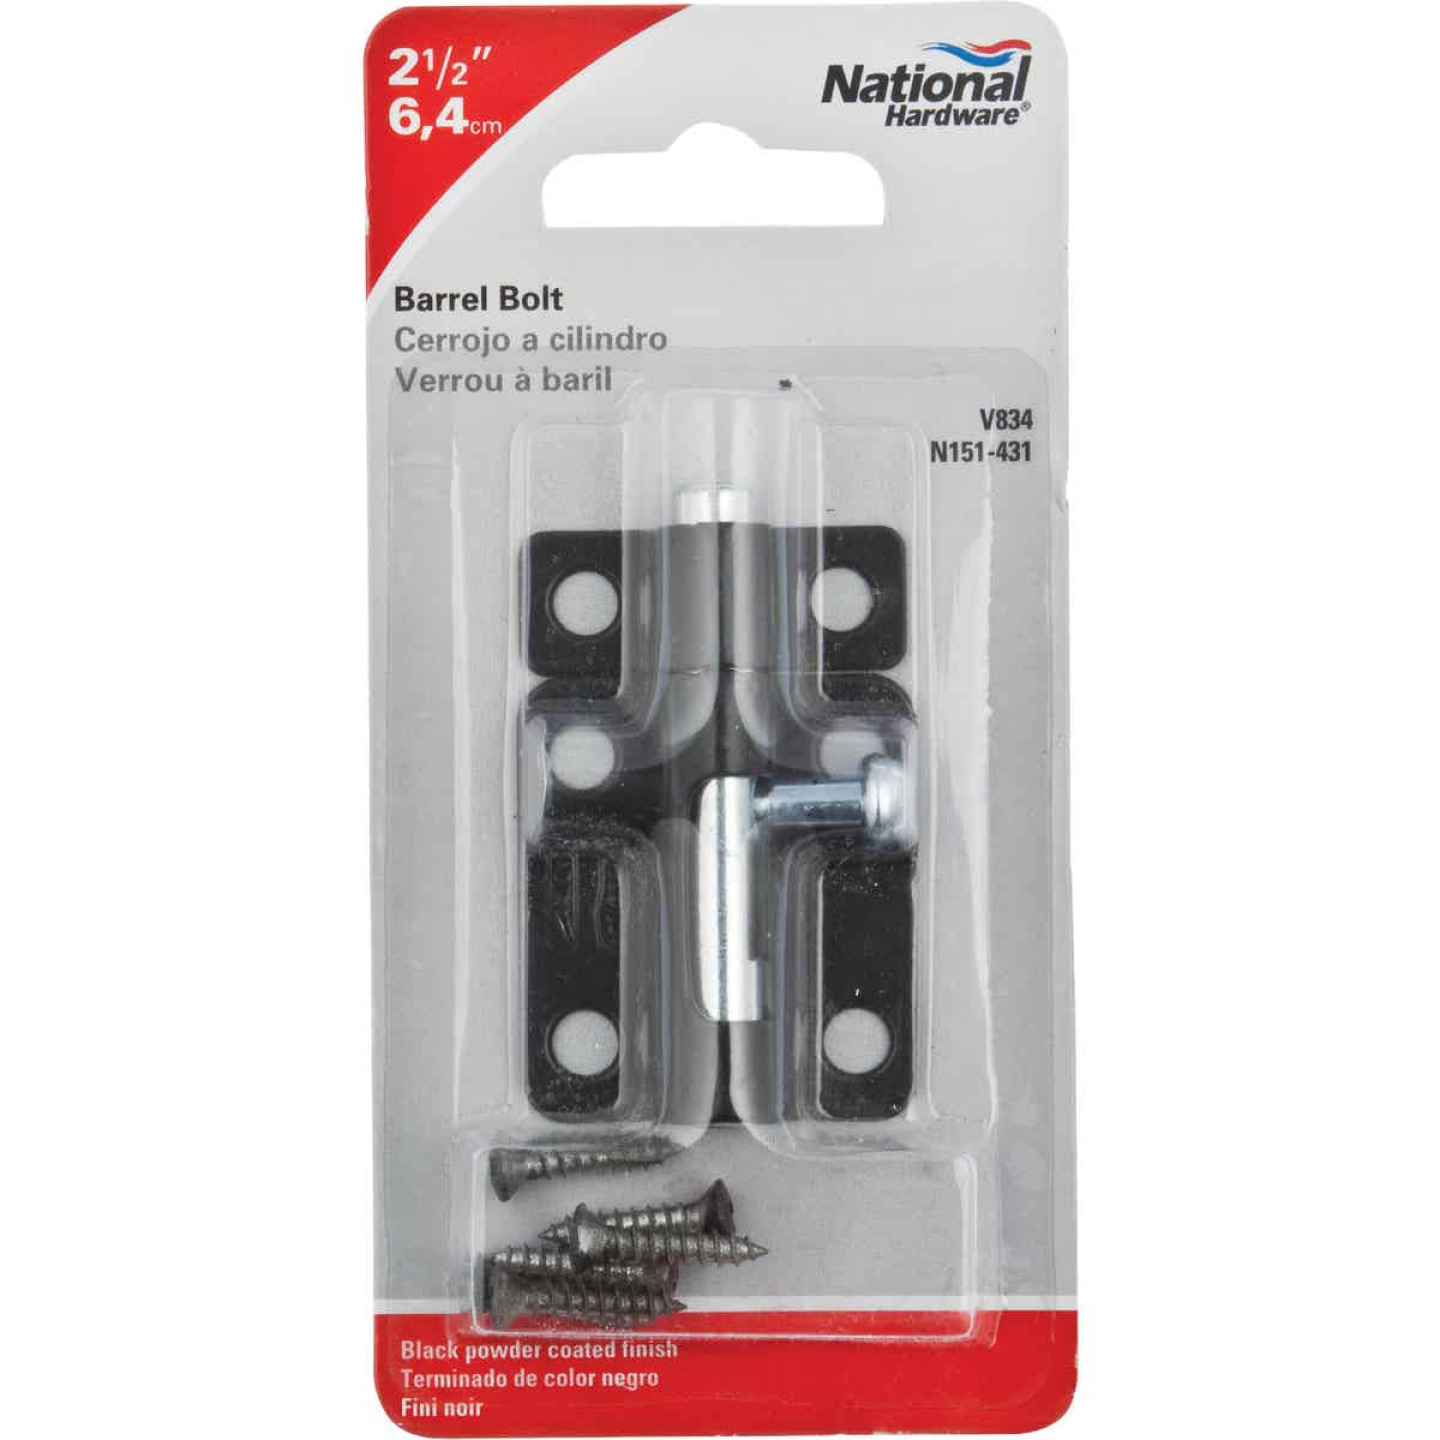 National 2-1/2 In. Black Steel Door Barrel Bolt Image 2